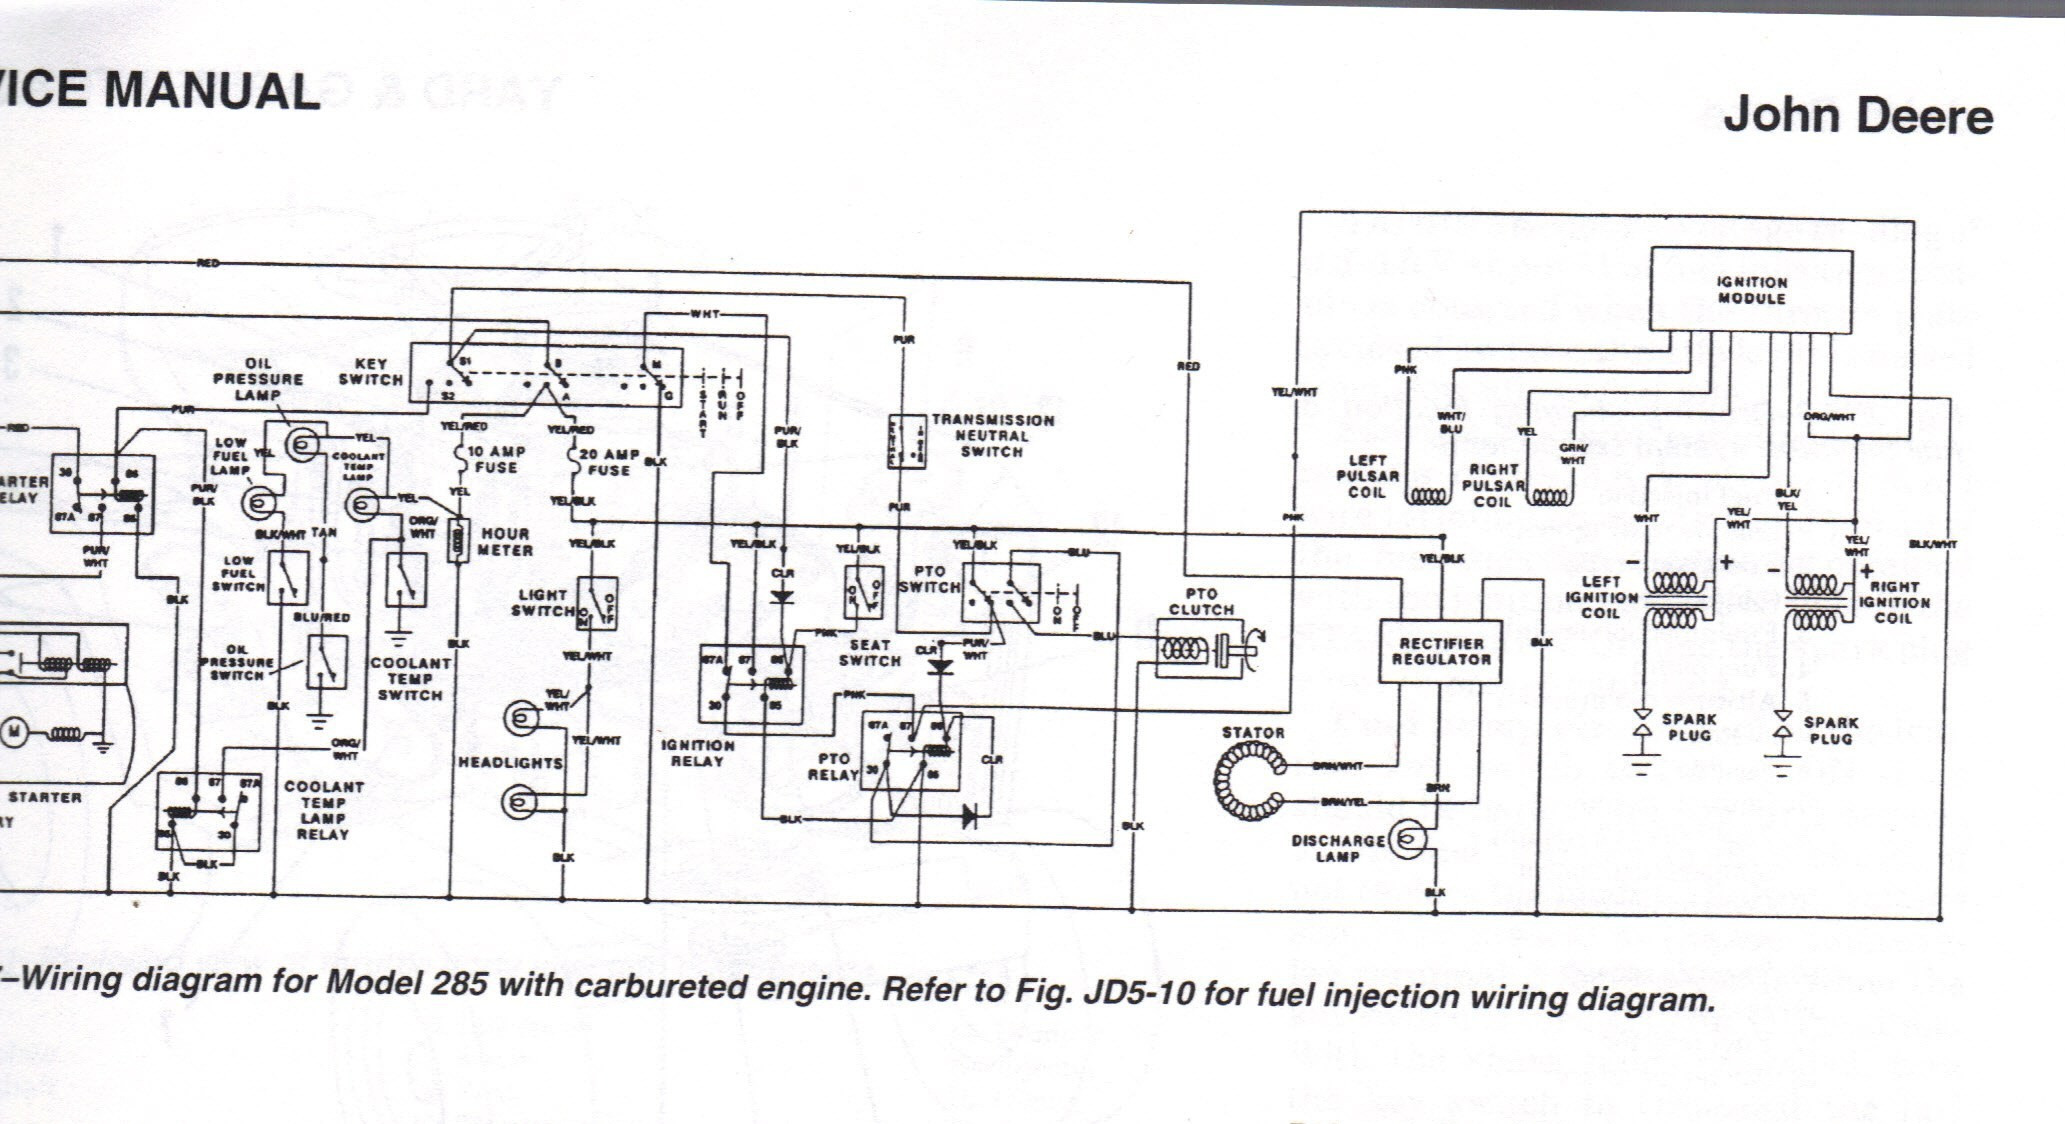 96701 L130 Wiring Schematic | Digital Resources on john deere pto diagram, john deere lawn mower parts diagram, john deere x320 drive belt diagram, craftsman riding lawn mower wiring diagram, john deere 4020 hydraulic pump diagram, john deere 318 engine diagram,